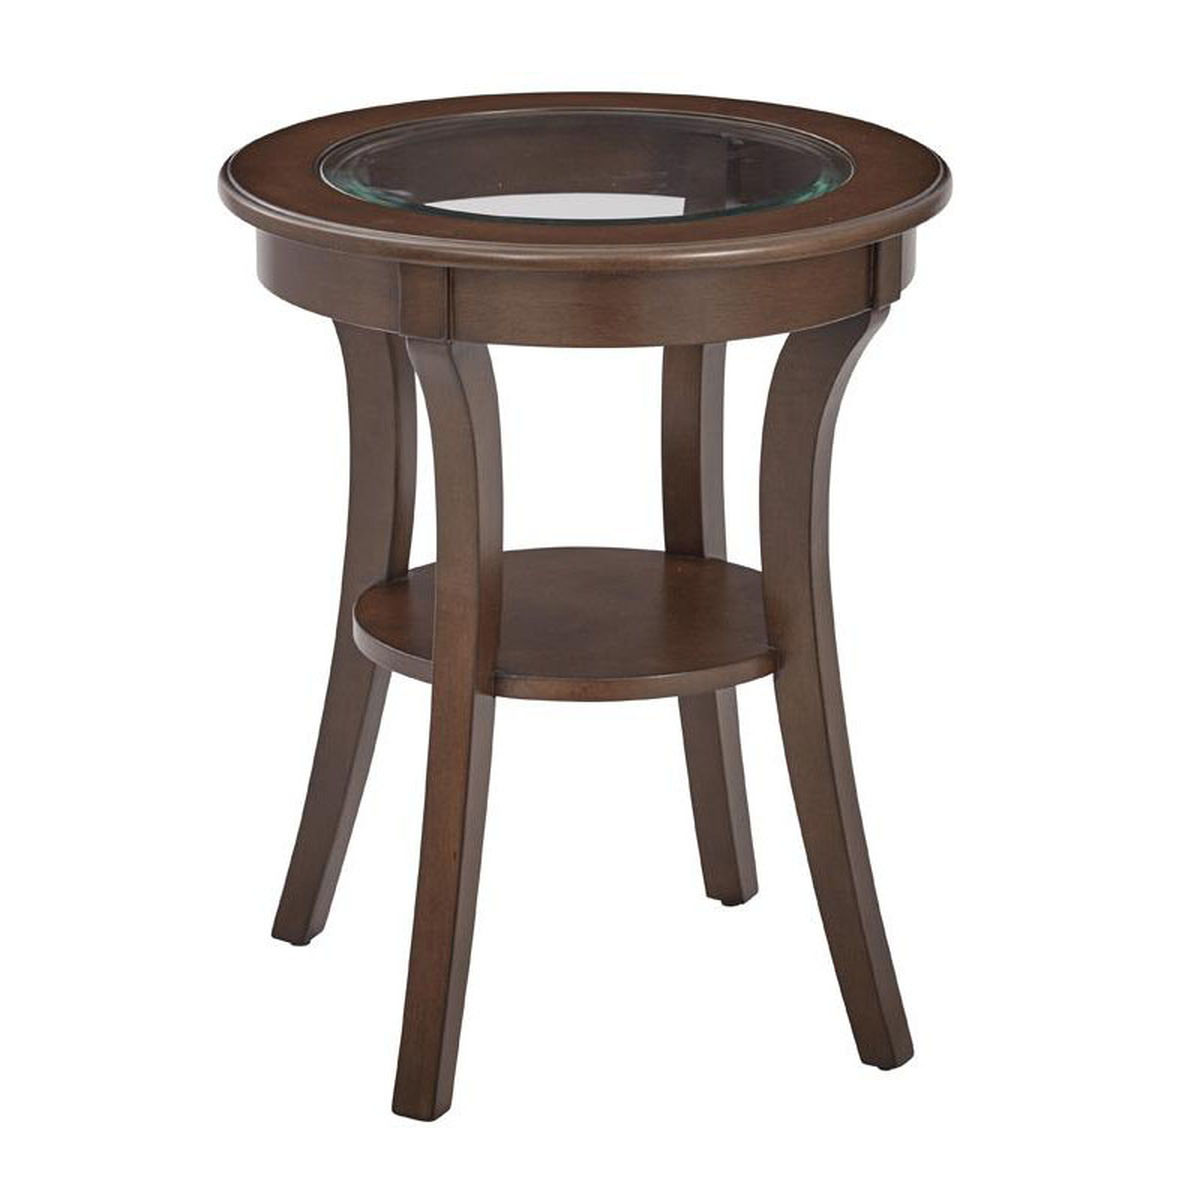 harper macchiato glass accent table bizchair office star products main round our osp designs top with wood finish and shelf steel end tables sea themed lamps pool furniture